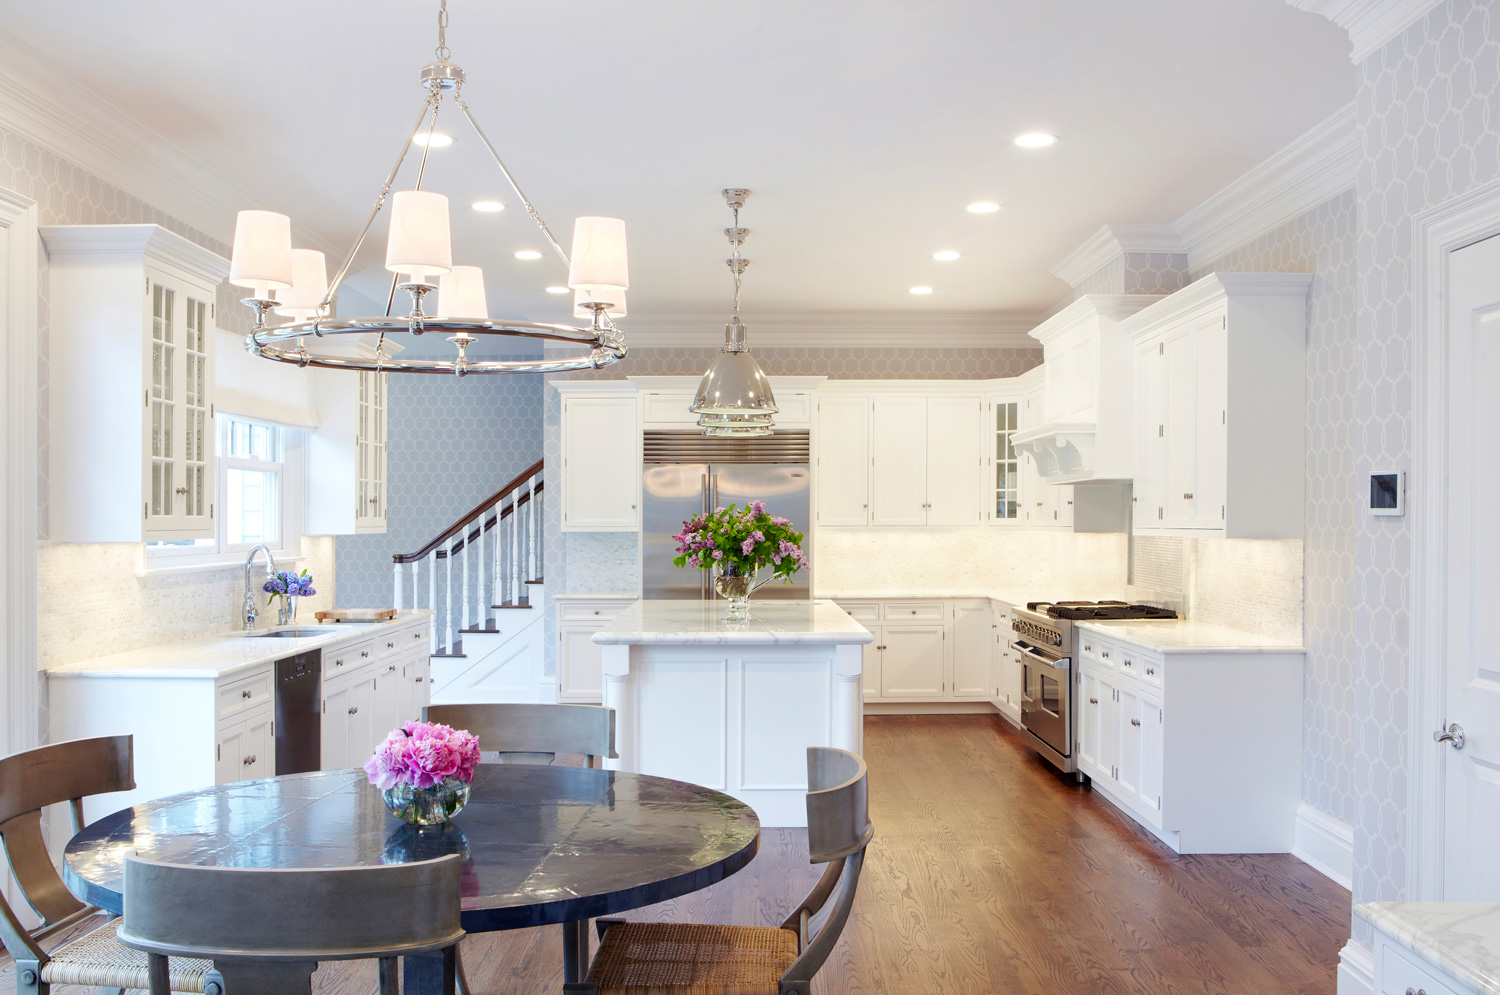 How To Coordinate Lighting In Your Kitchen Island And Breakfast Nook Combinations